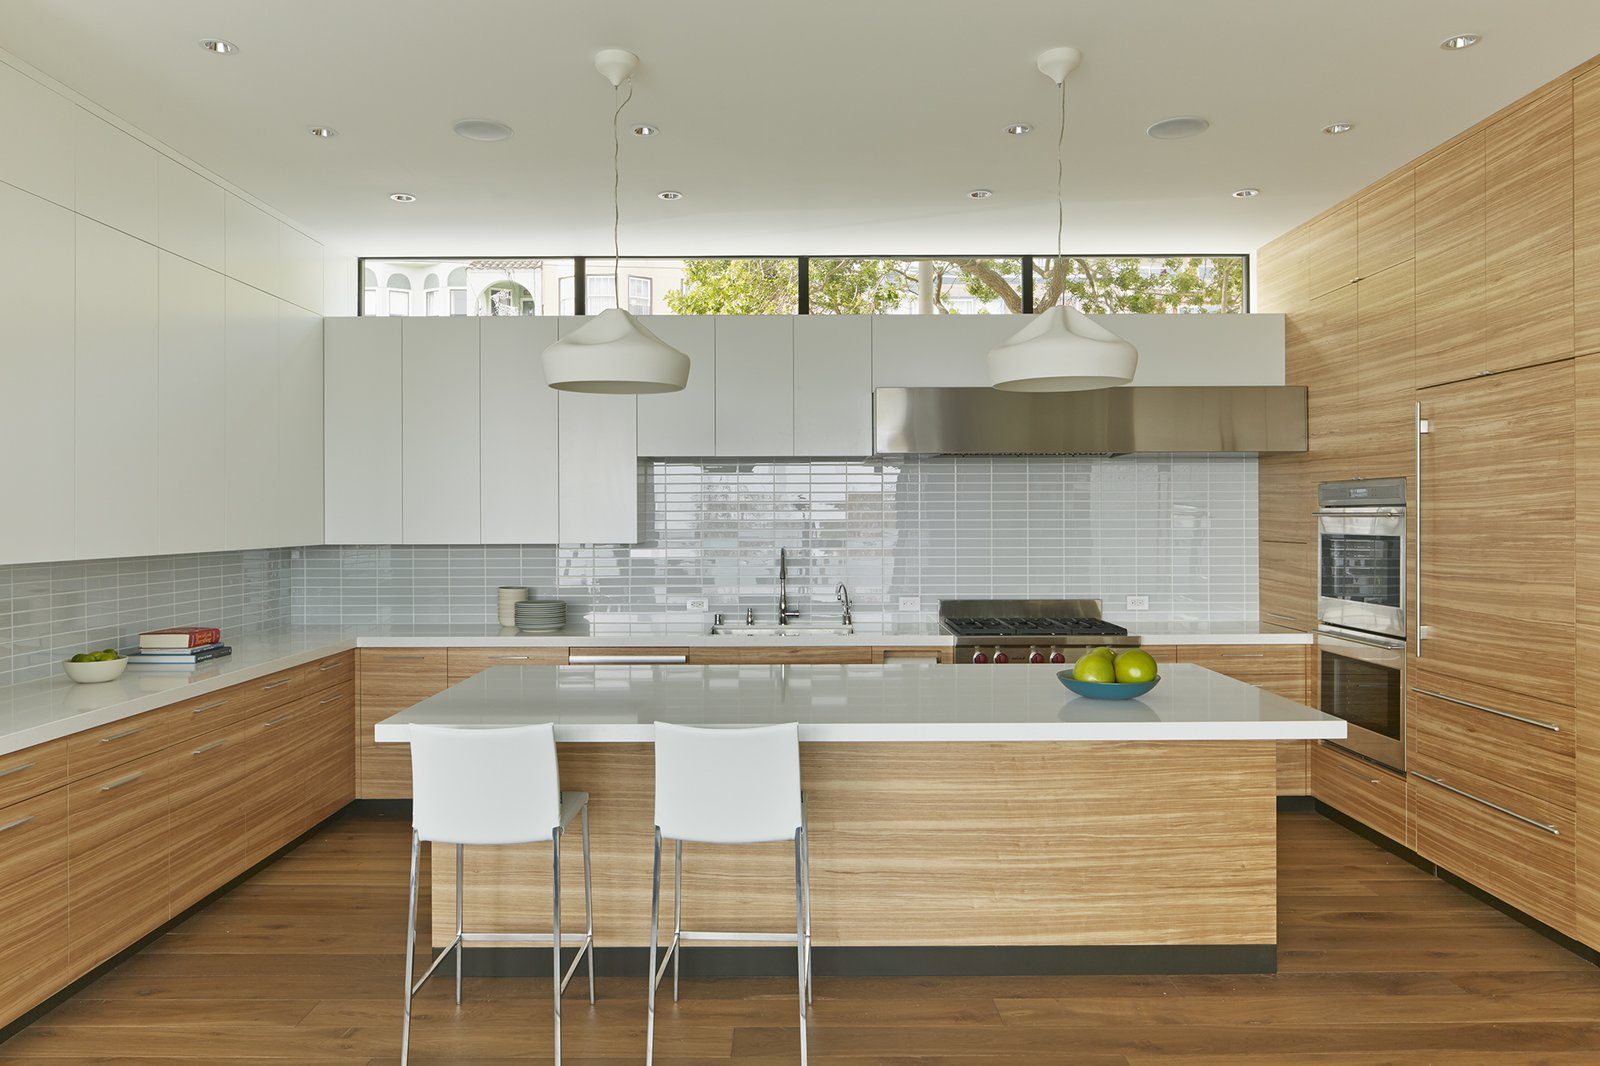 The architects wanted to create as much of a buffer as possible against the urban traffic outside the kitchen. A clerestory window manages to maintain a visual connection with the neighborhood while blocking its noise. The kitchen features Pleat Box pendant lights from Marset and Lio Stools by Roberto Barbieri for Zanotta. Tagged: Kitchen, Engineered Quartz Counter, White Cabinet, Medium Hardwood Floor, Glass Tile Backsplashe, Recessed Lighting, Pendant Lighting, Wall Oven, Range, and Range Hood.  Noe Residence by Caroline Wallis